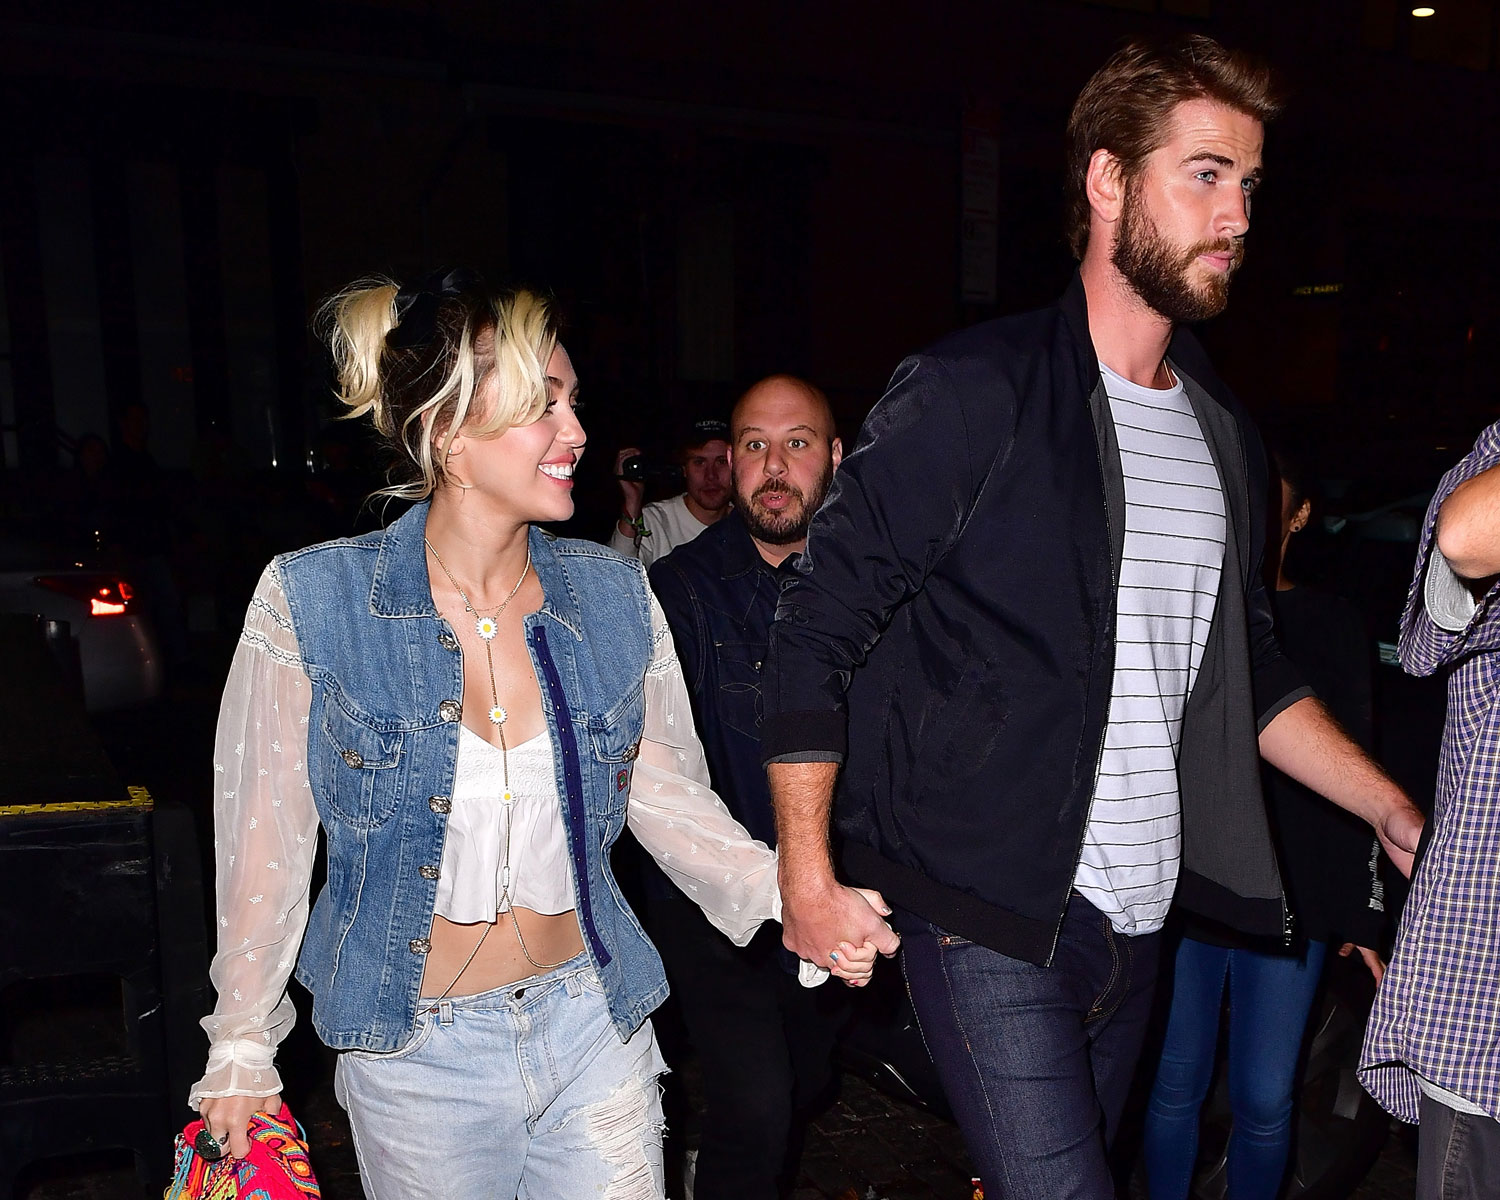 Miley Shares Her Side of Liam Hemsworth Reconciliation Story